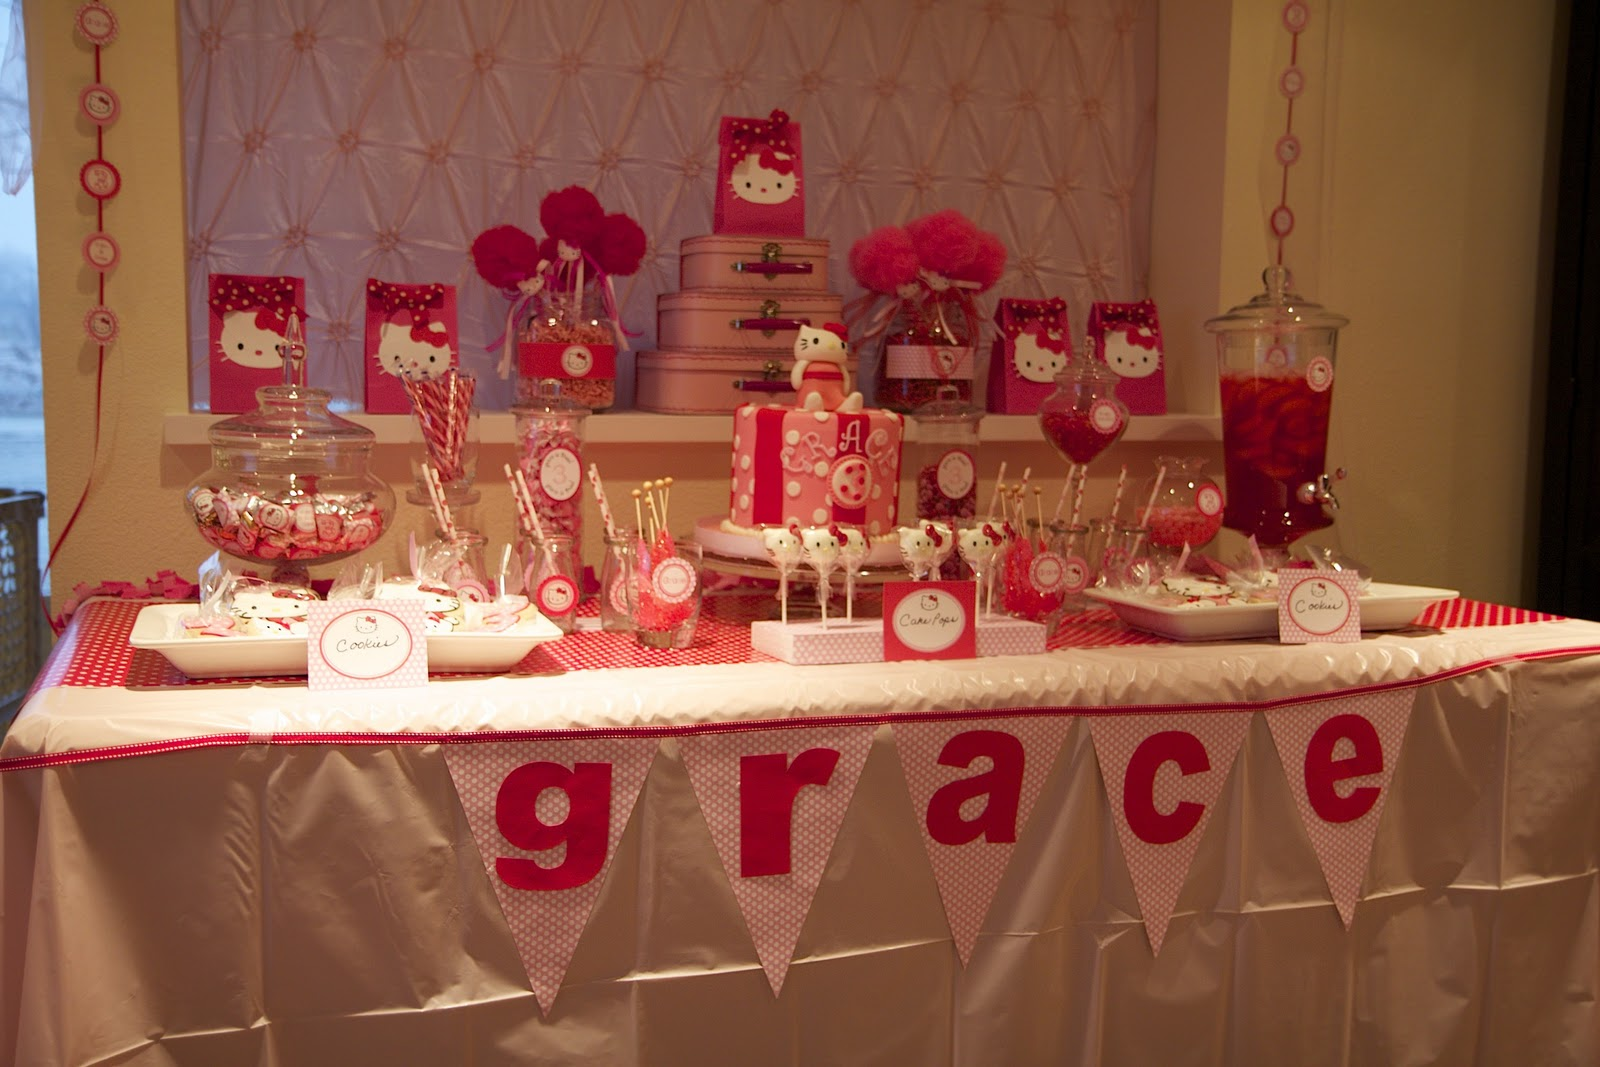 Home Sweet Place Graces Hello Kitty Birthday Party